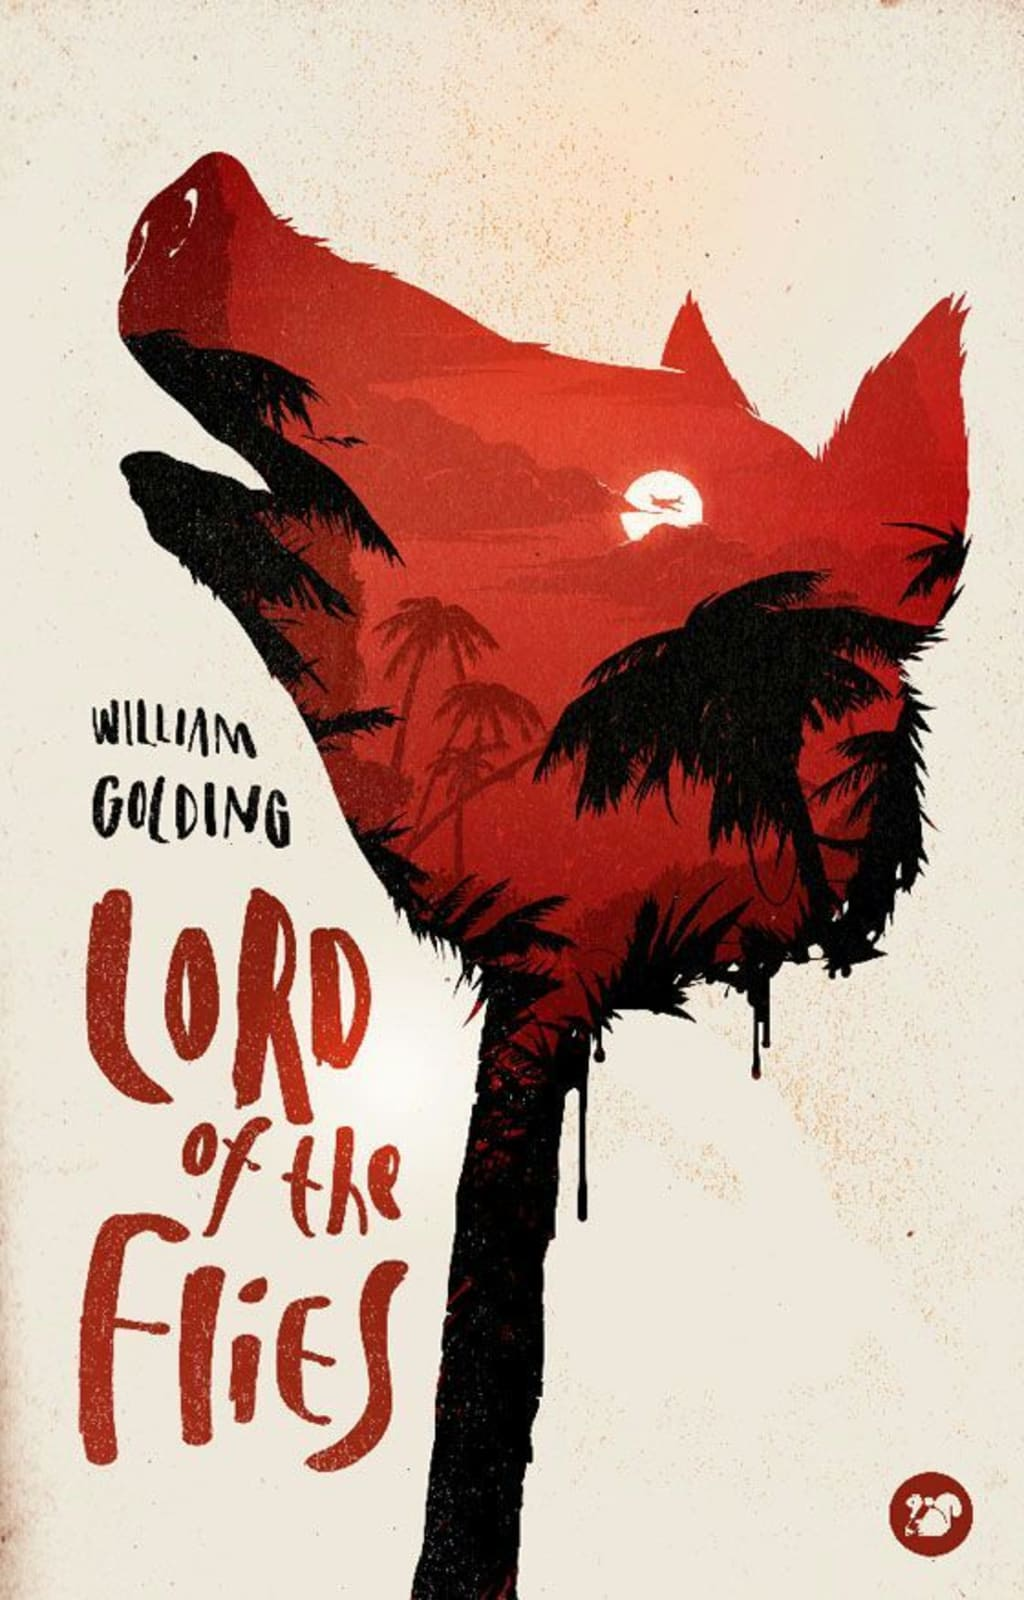 The Controversy of 'Lord of the Flies'